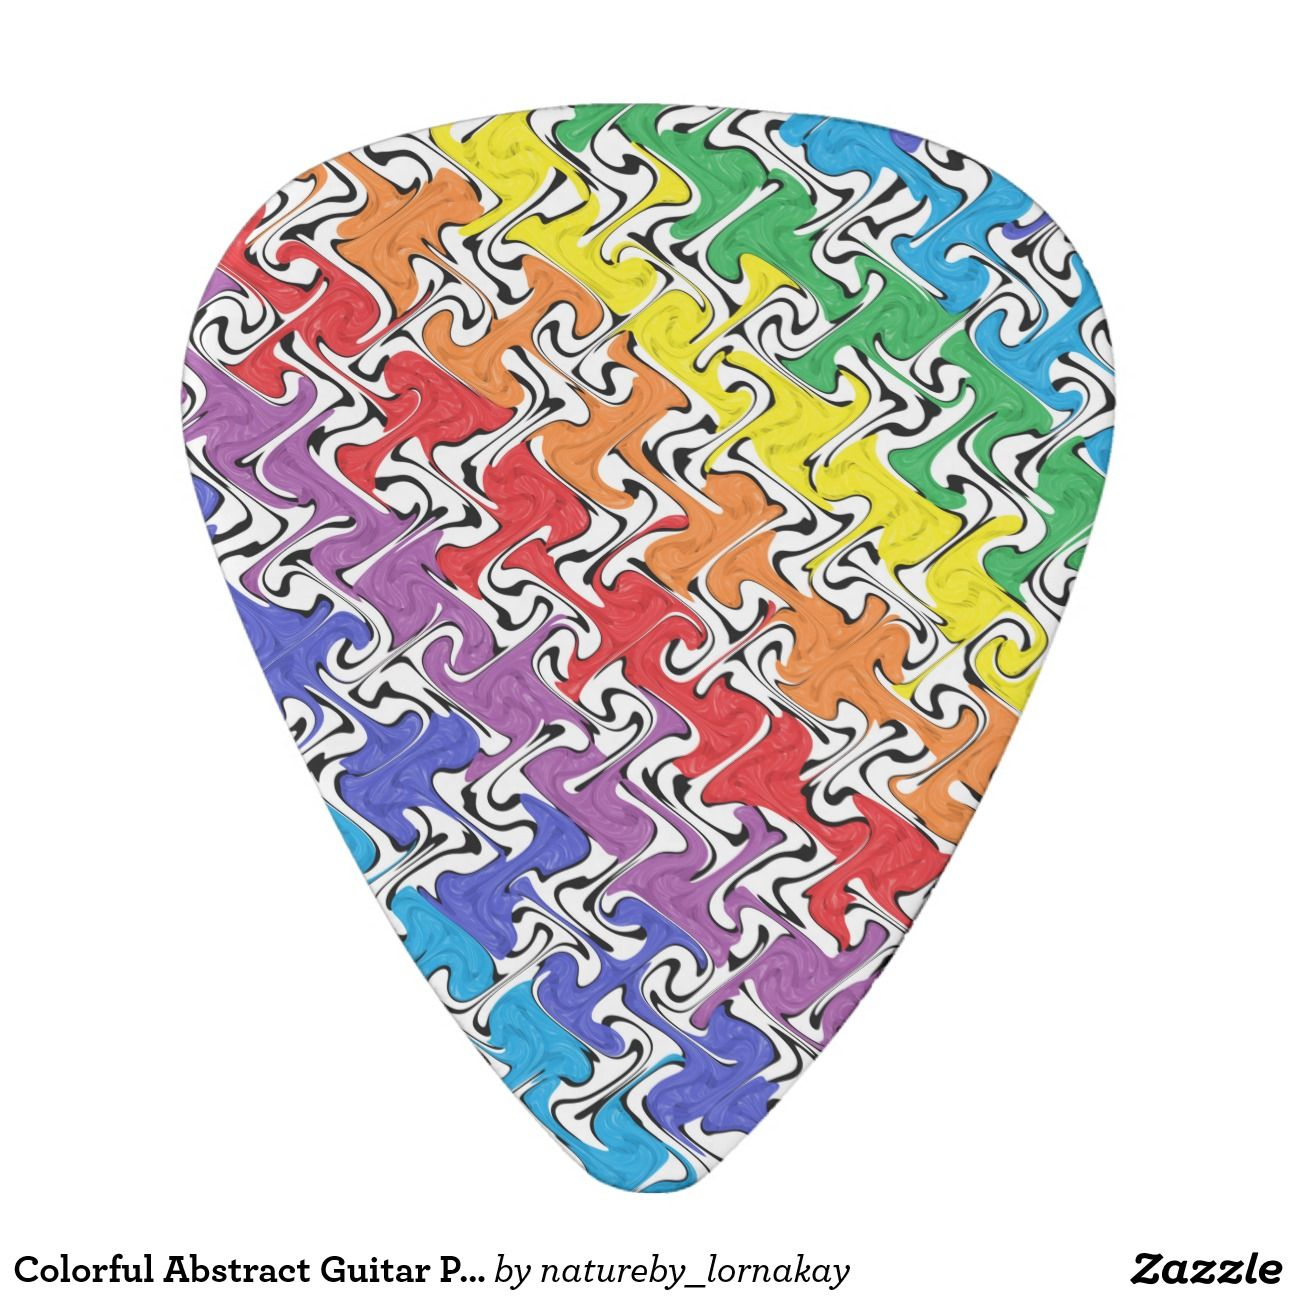 Colorful Abstract Guitar Pick #guitarpick #colorful #rainbowcolors #shapes #nondescript #fun